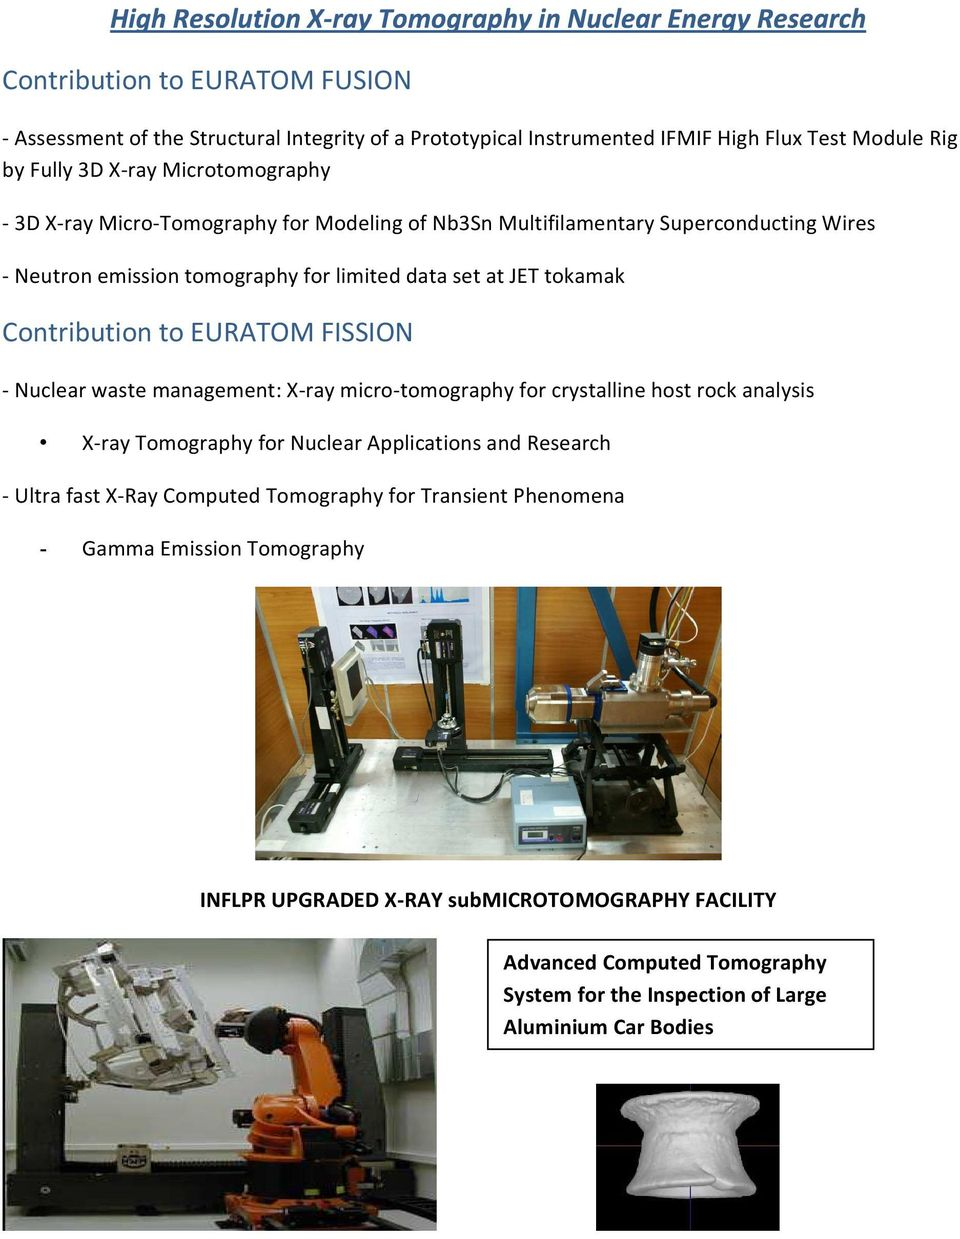 Nuclear waste management: X-ray micro-tomography for crystalline host rock analysis X-ray Tomography for Nuclear Applications and Research - Ultra fast X-Ray Computed Tomography